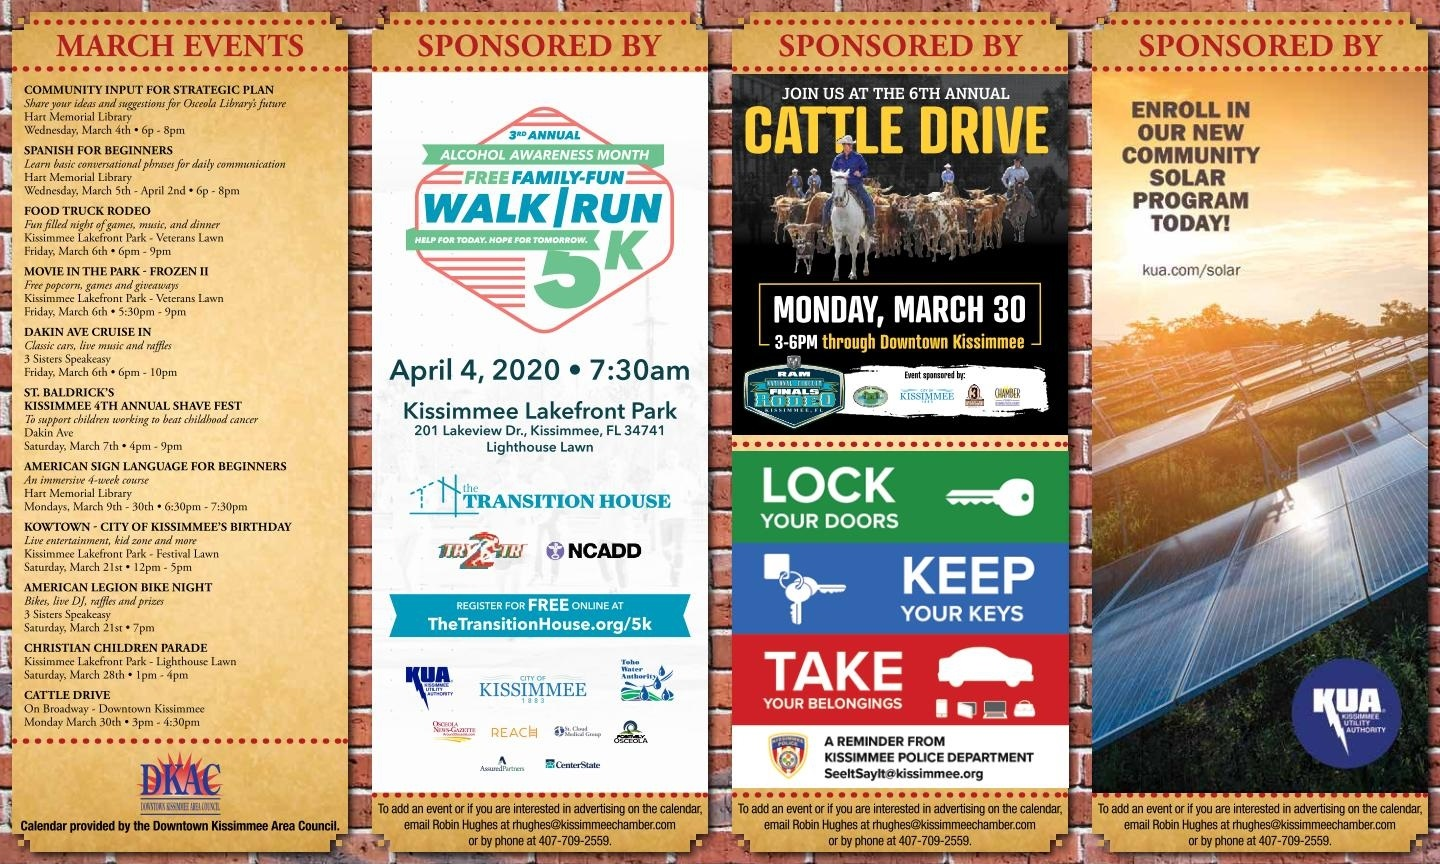 Cattle Drive Featured DKAC Event Of The Month